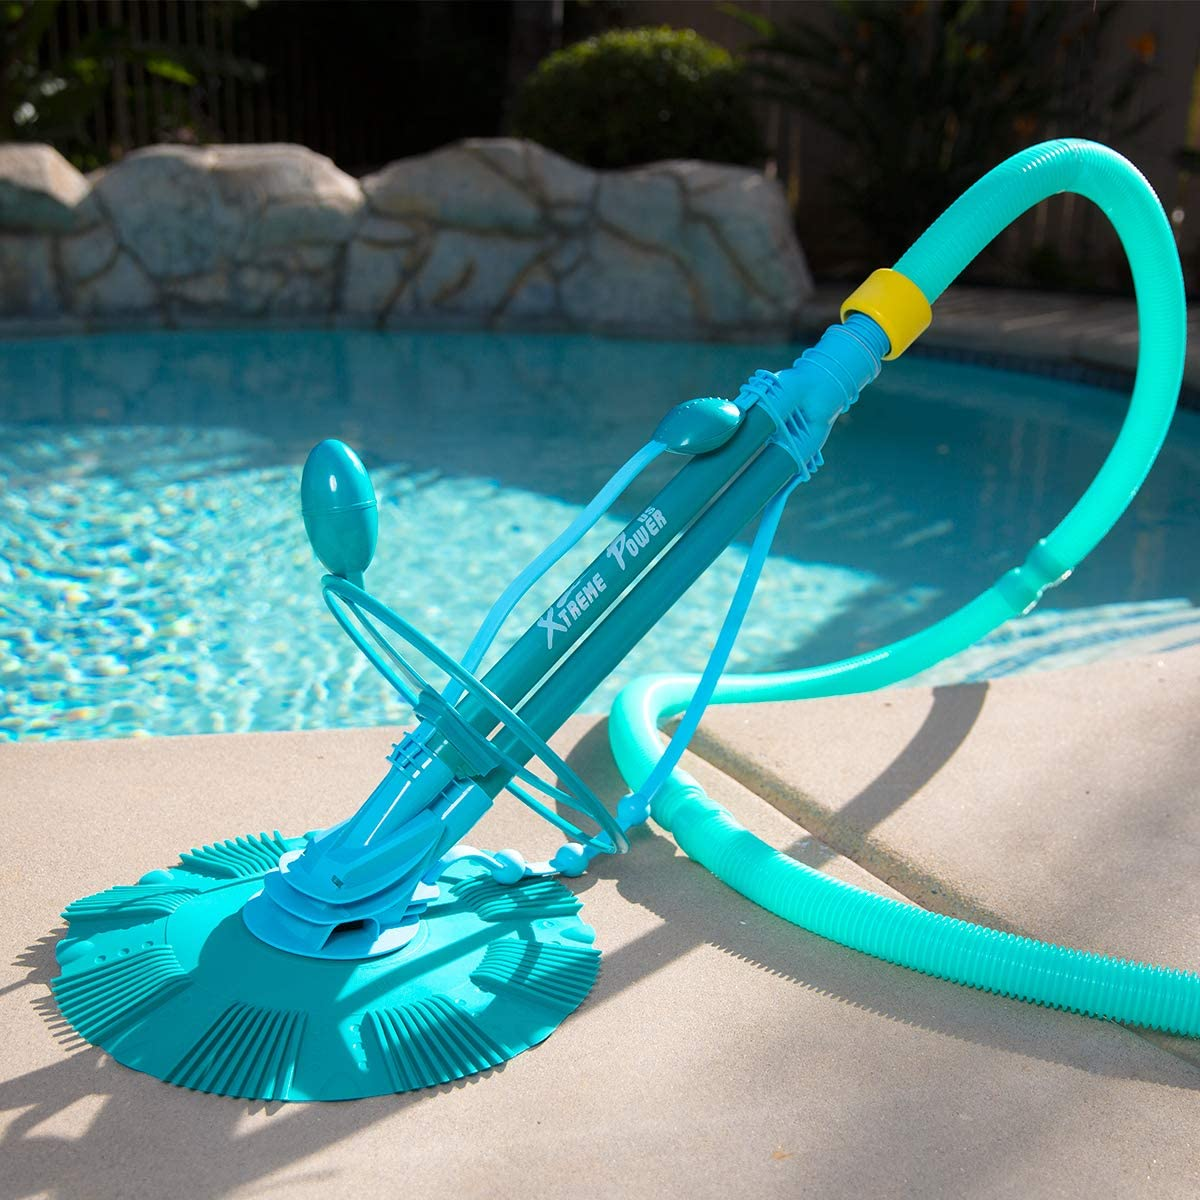 XtremepowerUS Suction Climb Wall Pool Cleaner - Amazon's #1 Best Seller